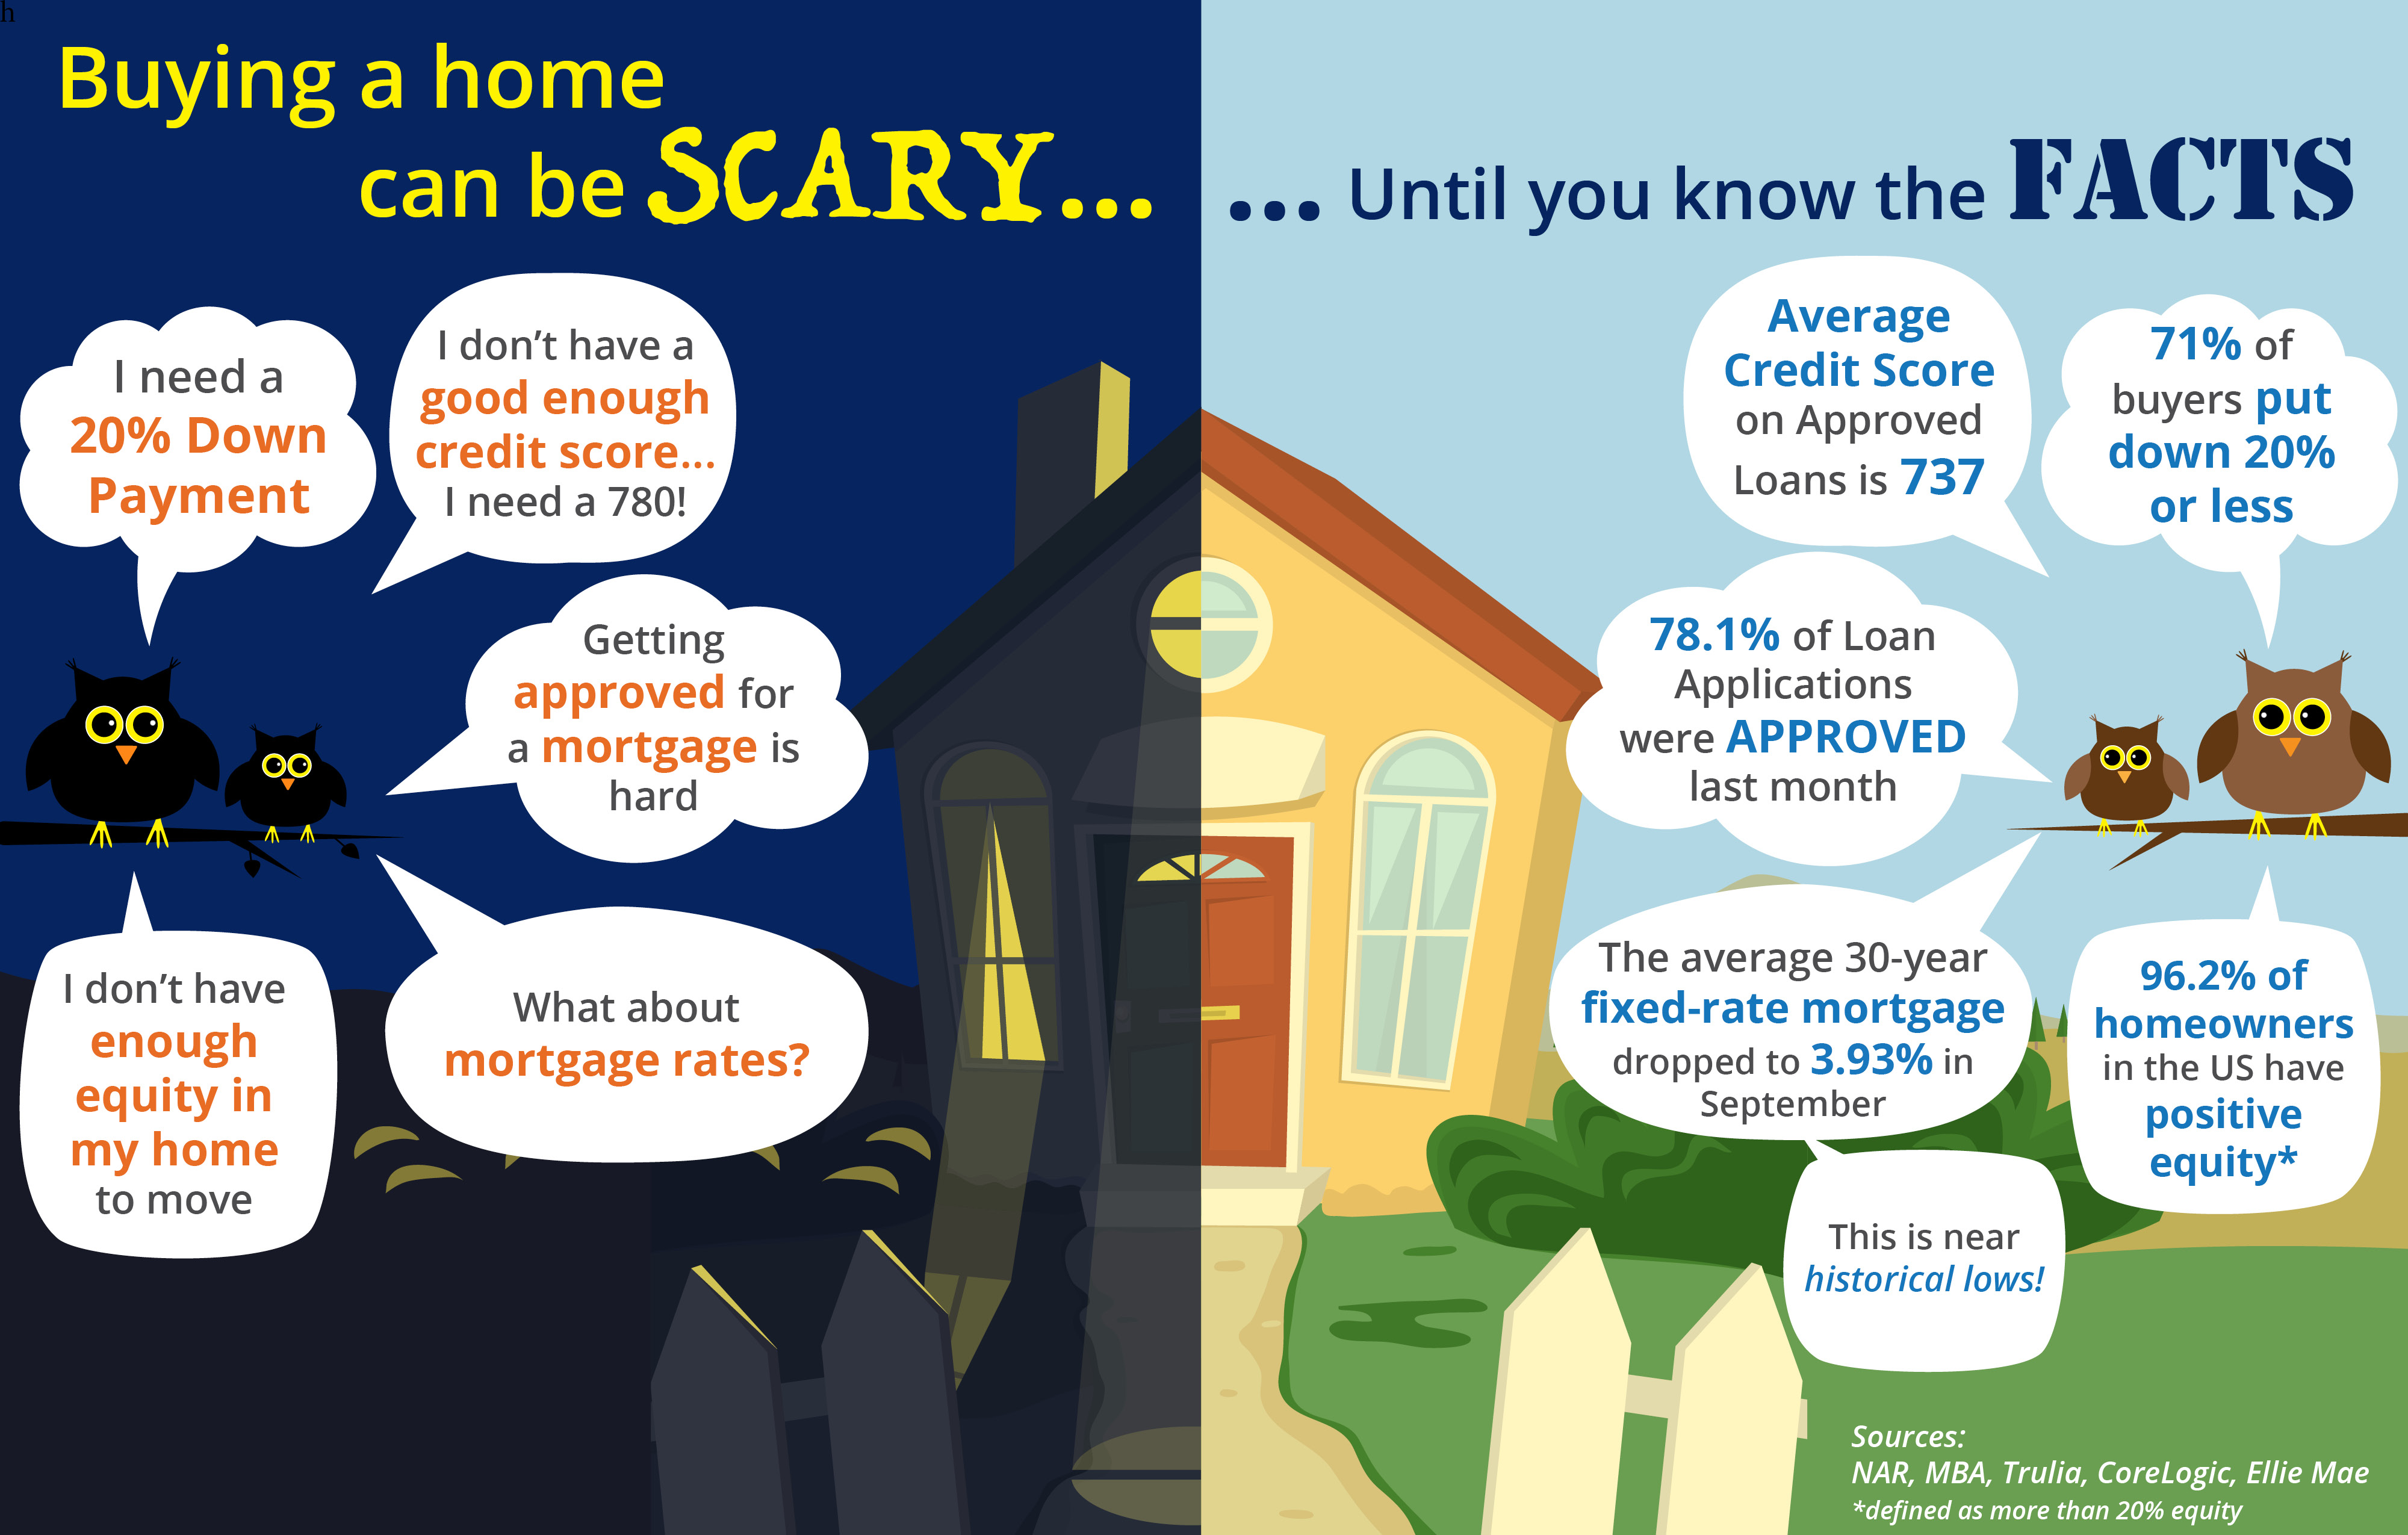 Buying a home can be SCARY…Until you know the FACTS [INFOGRAPHIC] | Simplifying The Market